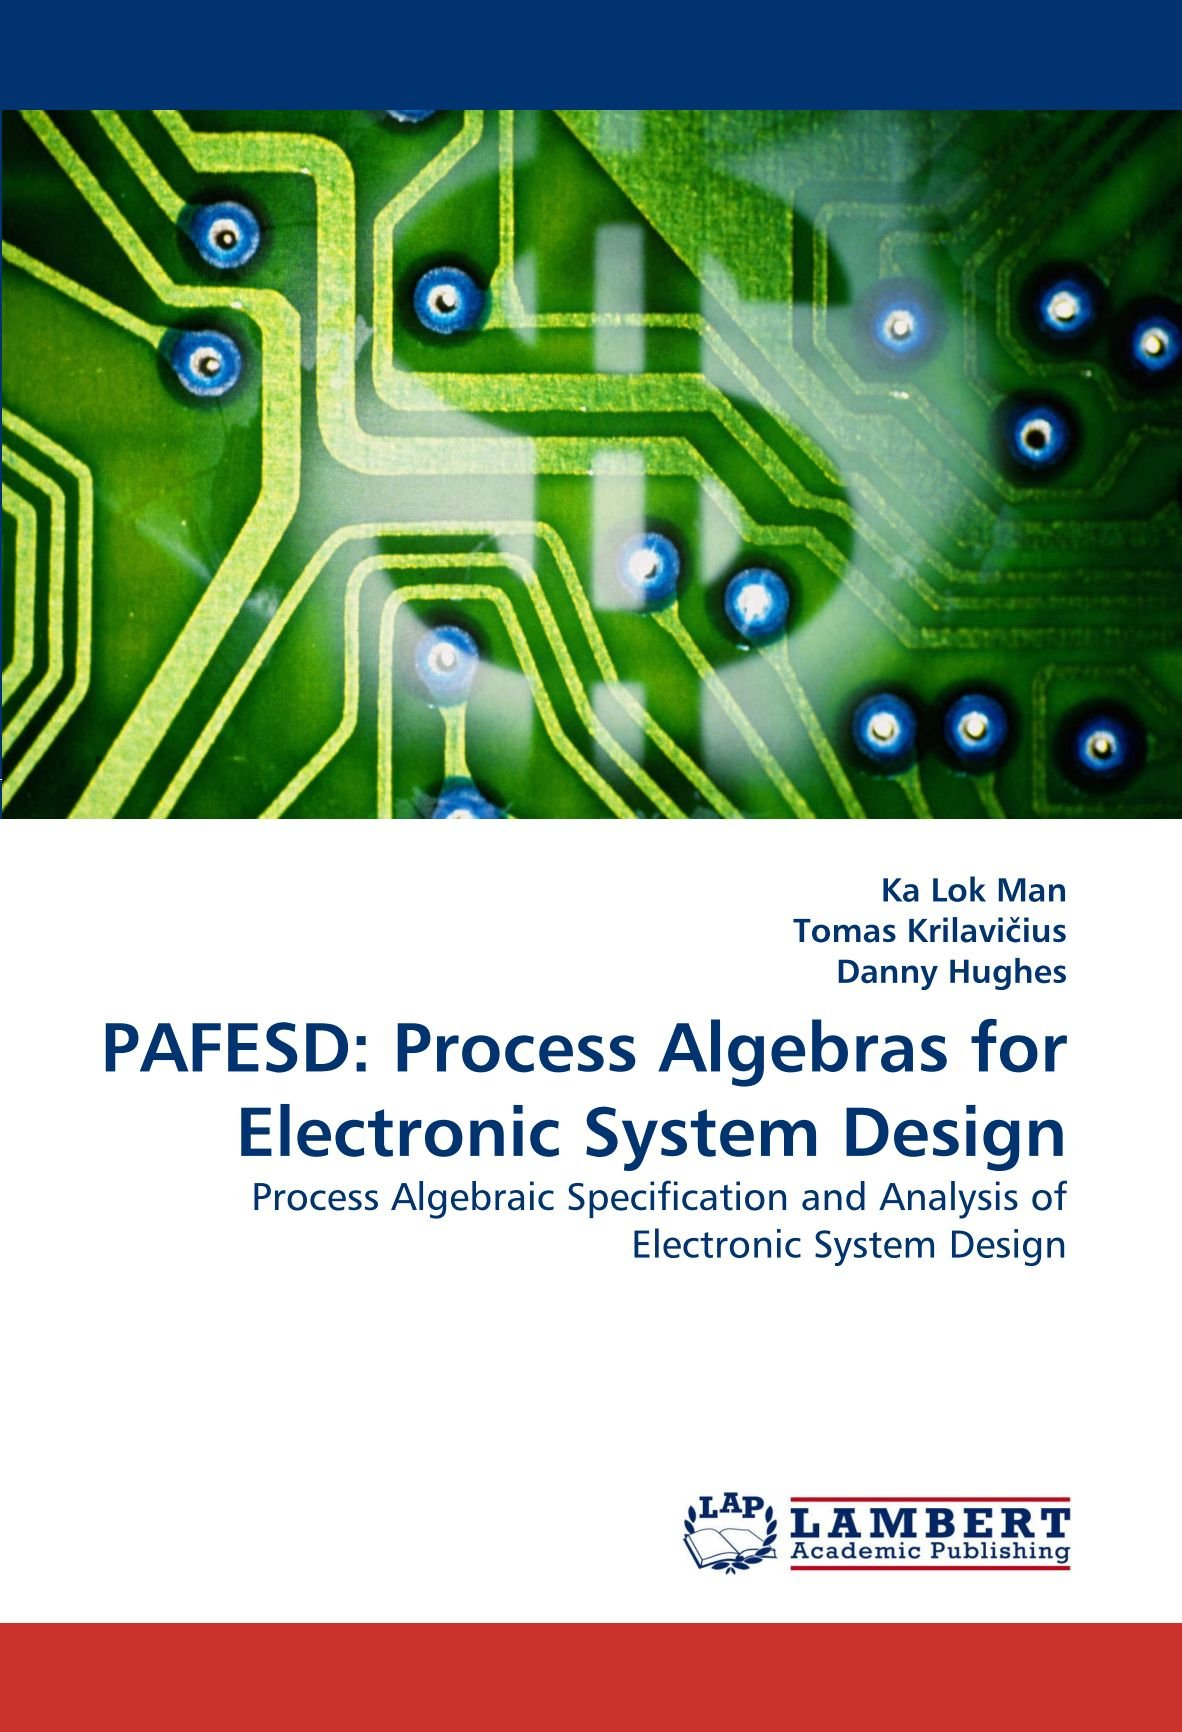 Pafesd Process Algebras For Electronic System Design Process Algebraic Specification And Analysis Of Electronic System Design Man Ka Lok Krilavi Ius Tomas Hughes Danny 9783838363837 Amazon Com Books